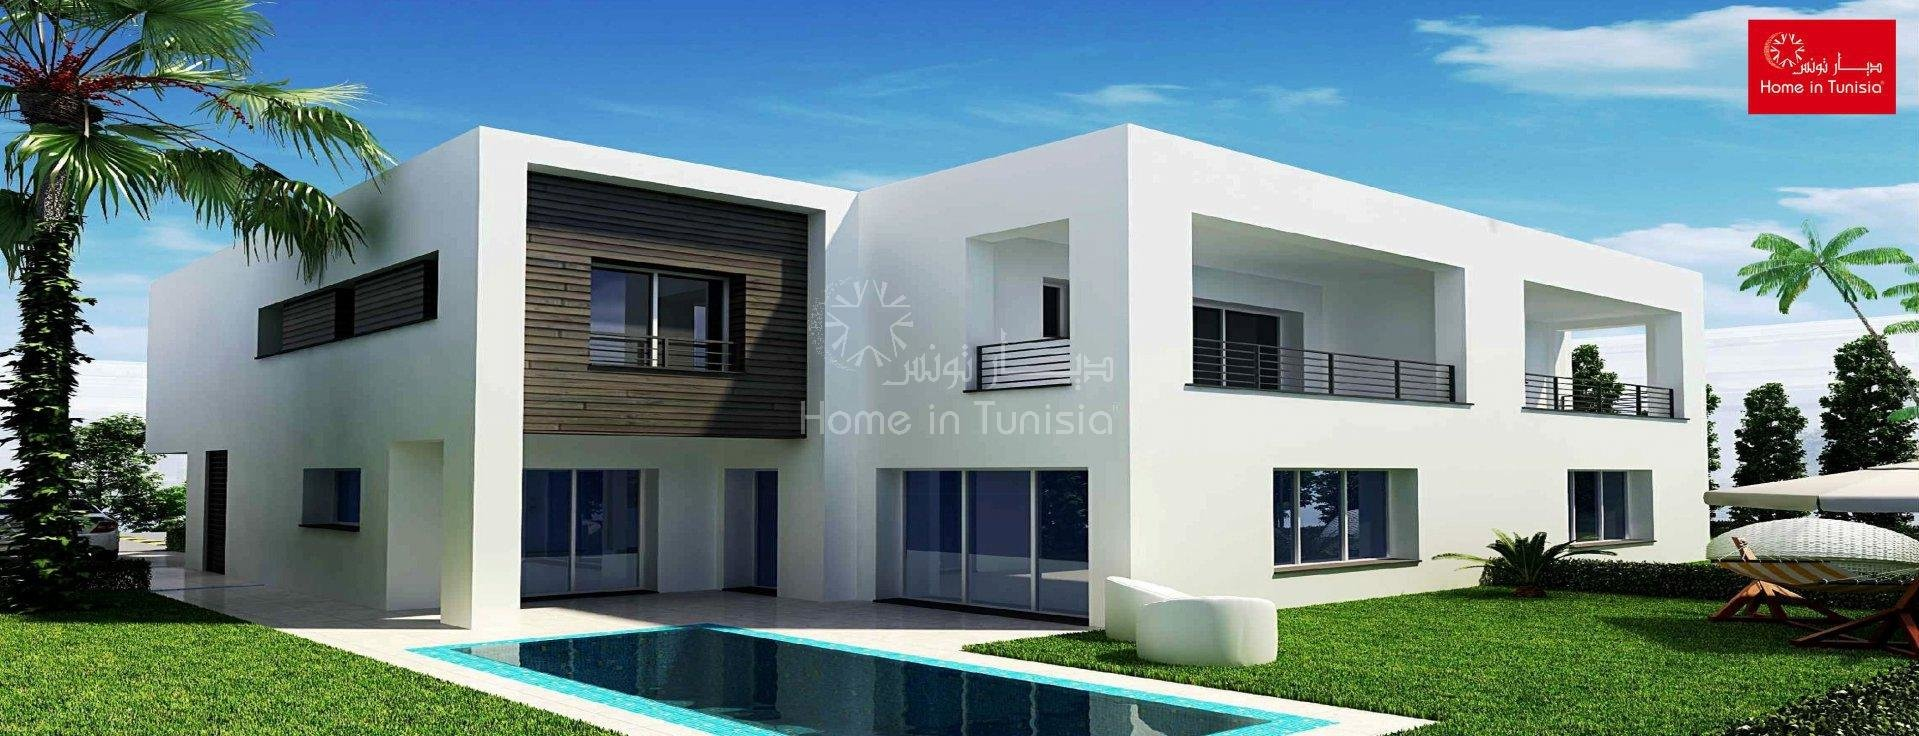 Villa isolated new golf of 328.05 m2 with 4 rooms terrace garden swimming pool garage